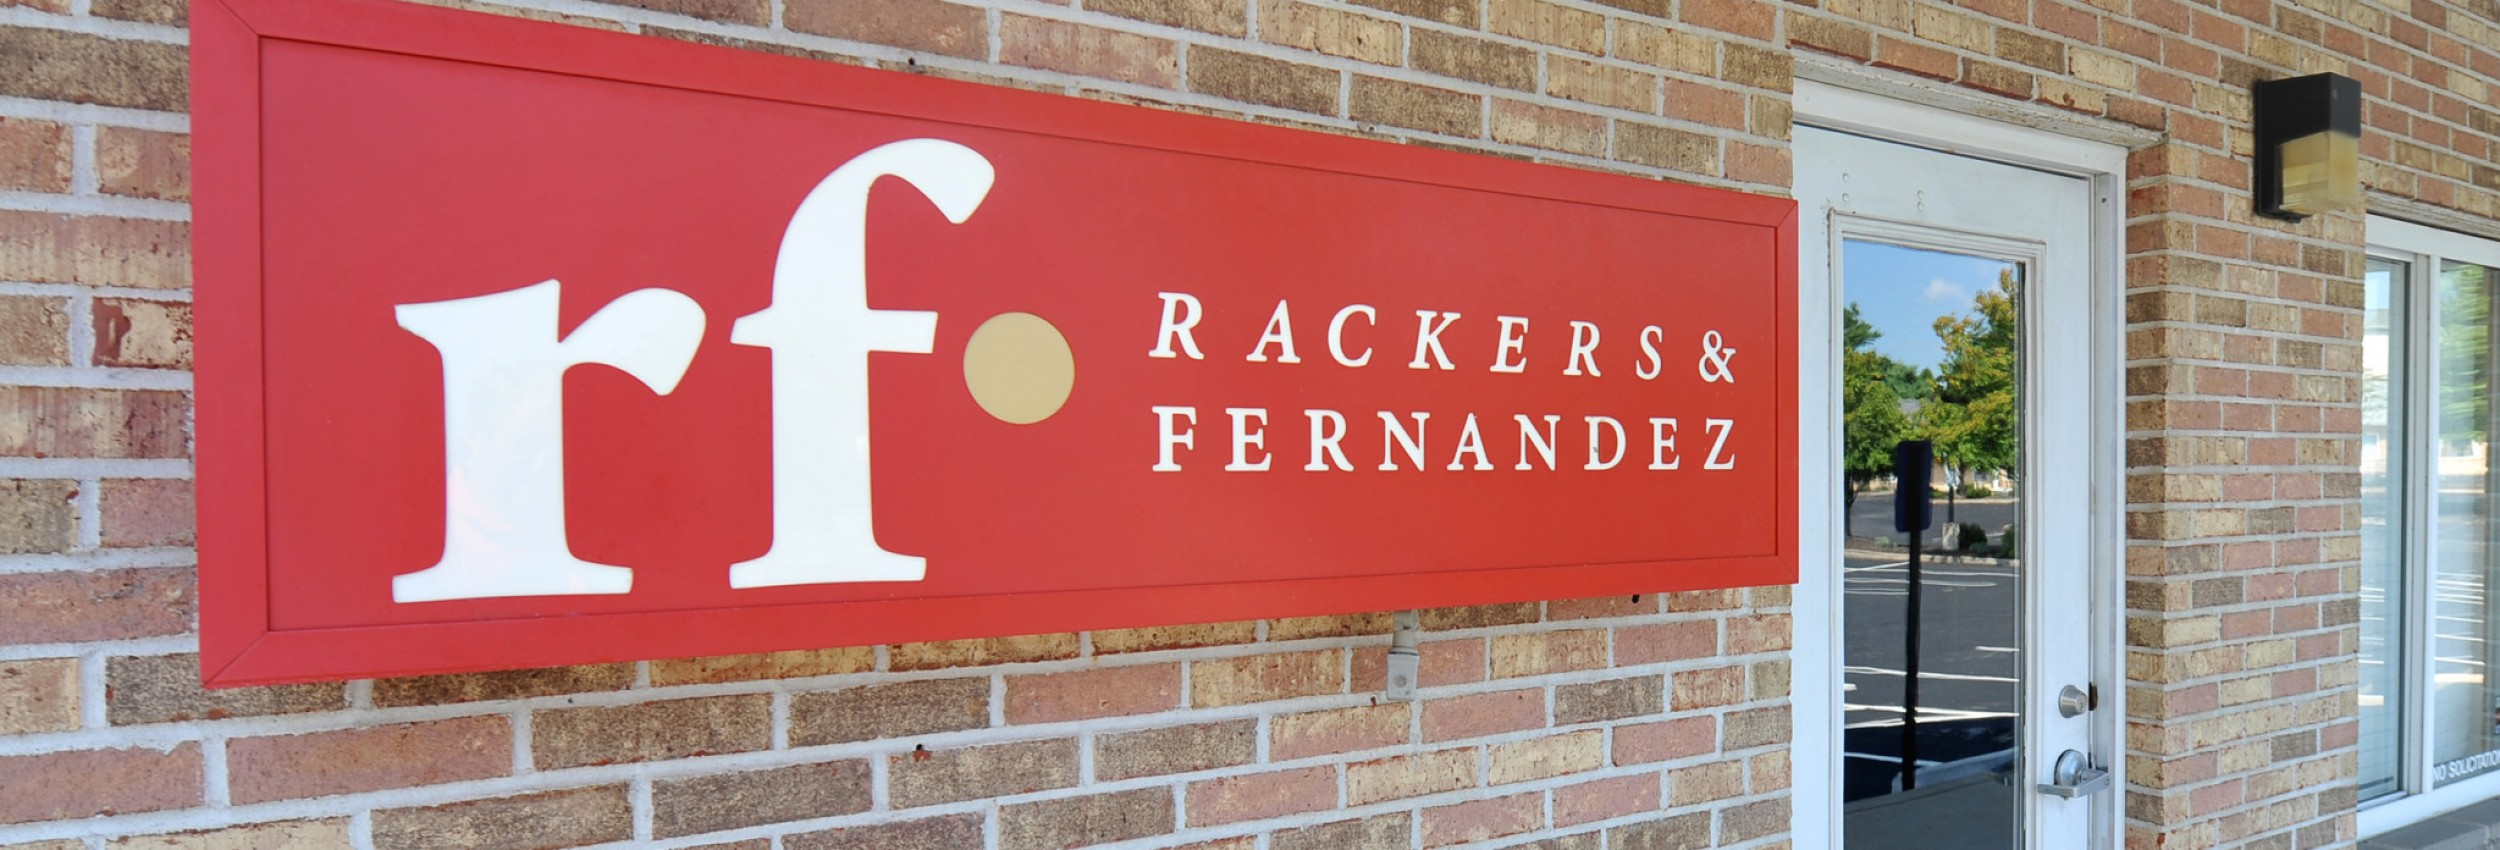 Rackers and Fernandez Sign